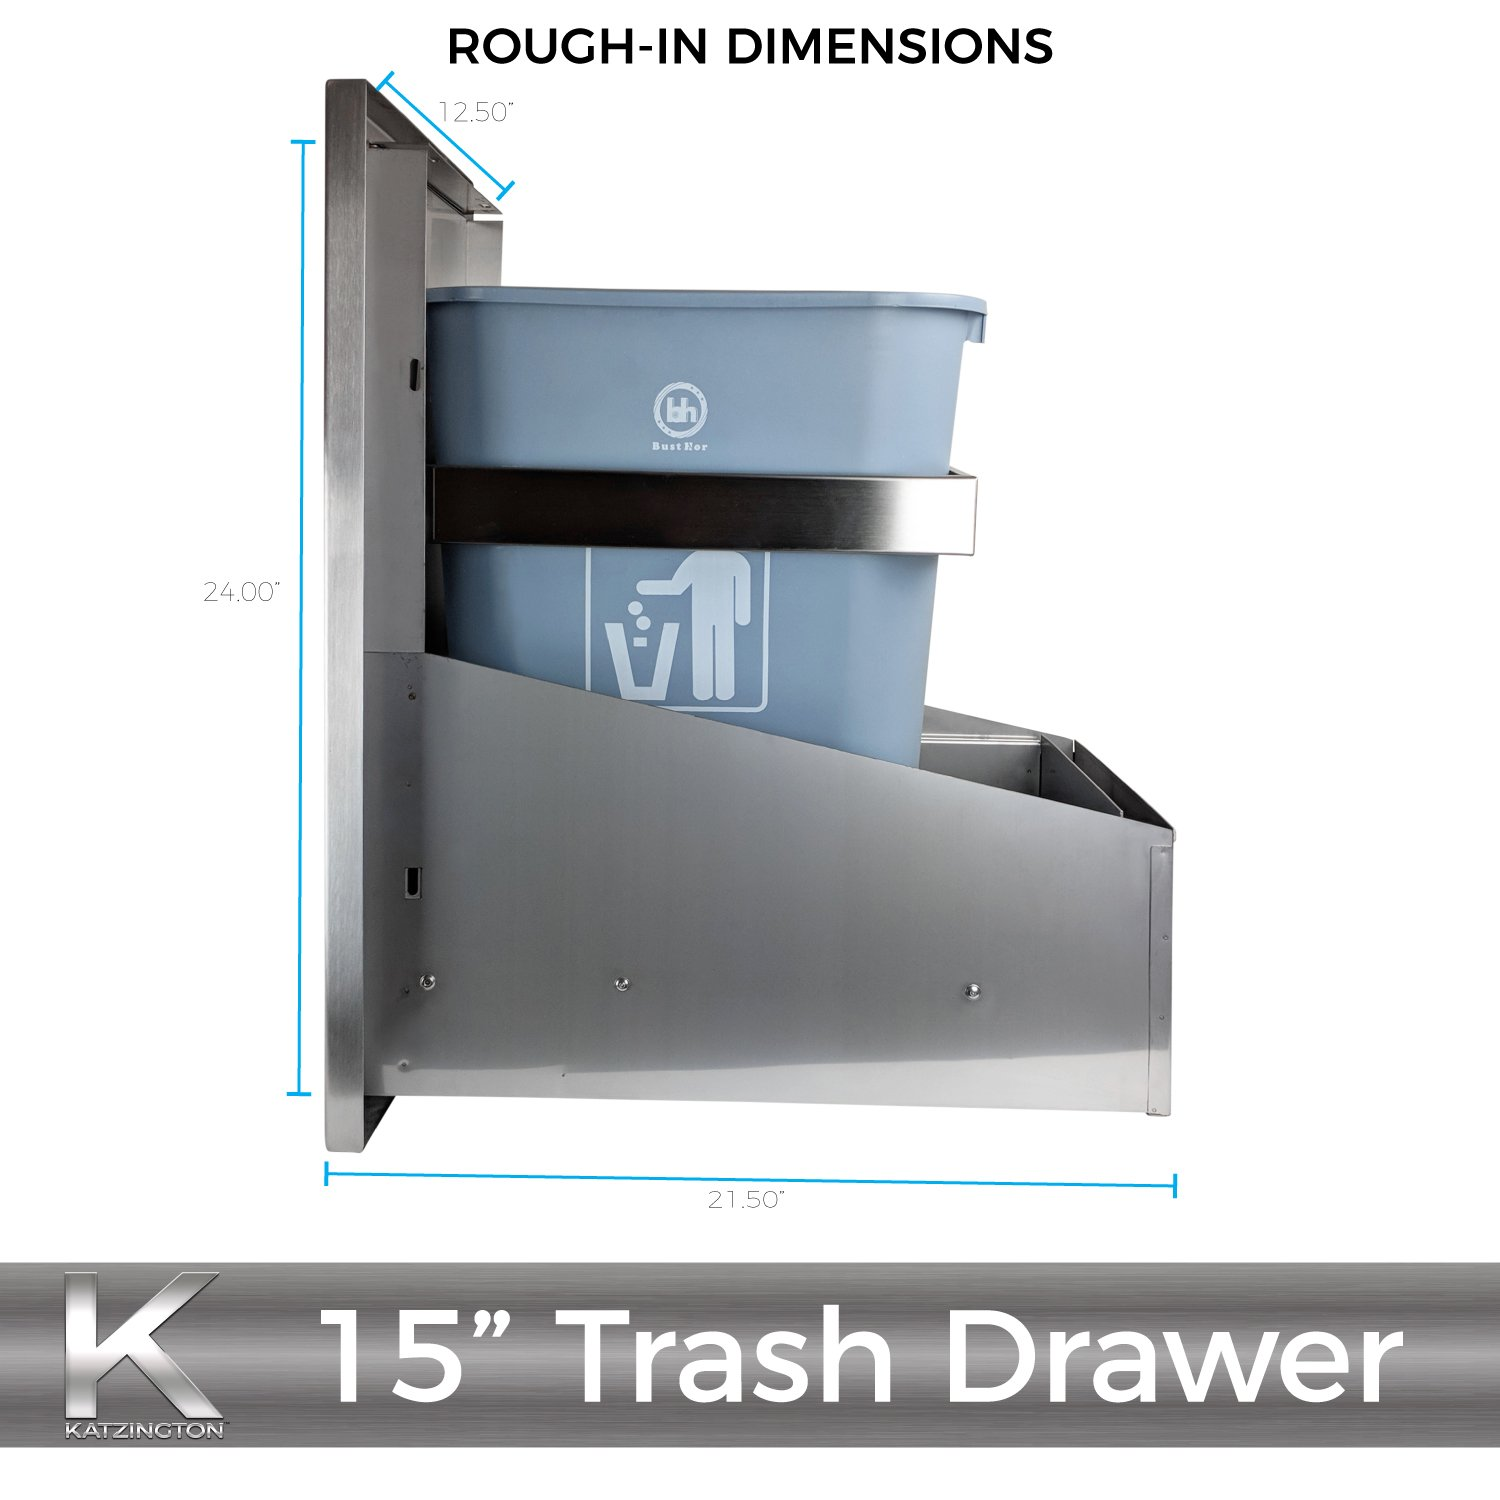 Katzington BBQ ISLAND TRASH DRAWER - Modern Style - 15'' Trash Drawer - 304 Grade Stainless Steel - Double Walled Construction - Barbecue Island/Outdoor Kitchen Access Door - Soft Close Drawer Glides by Katzington (Image #4)